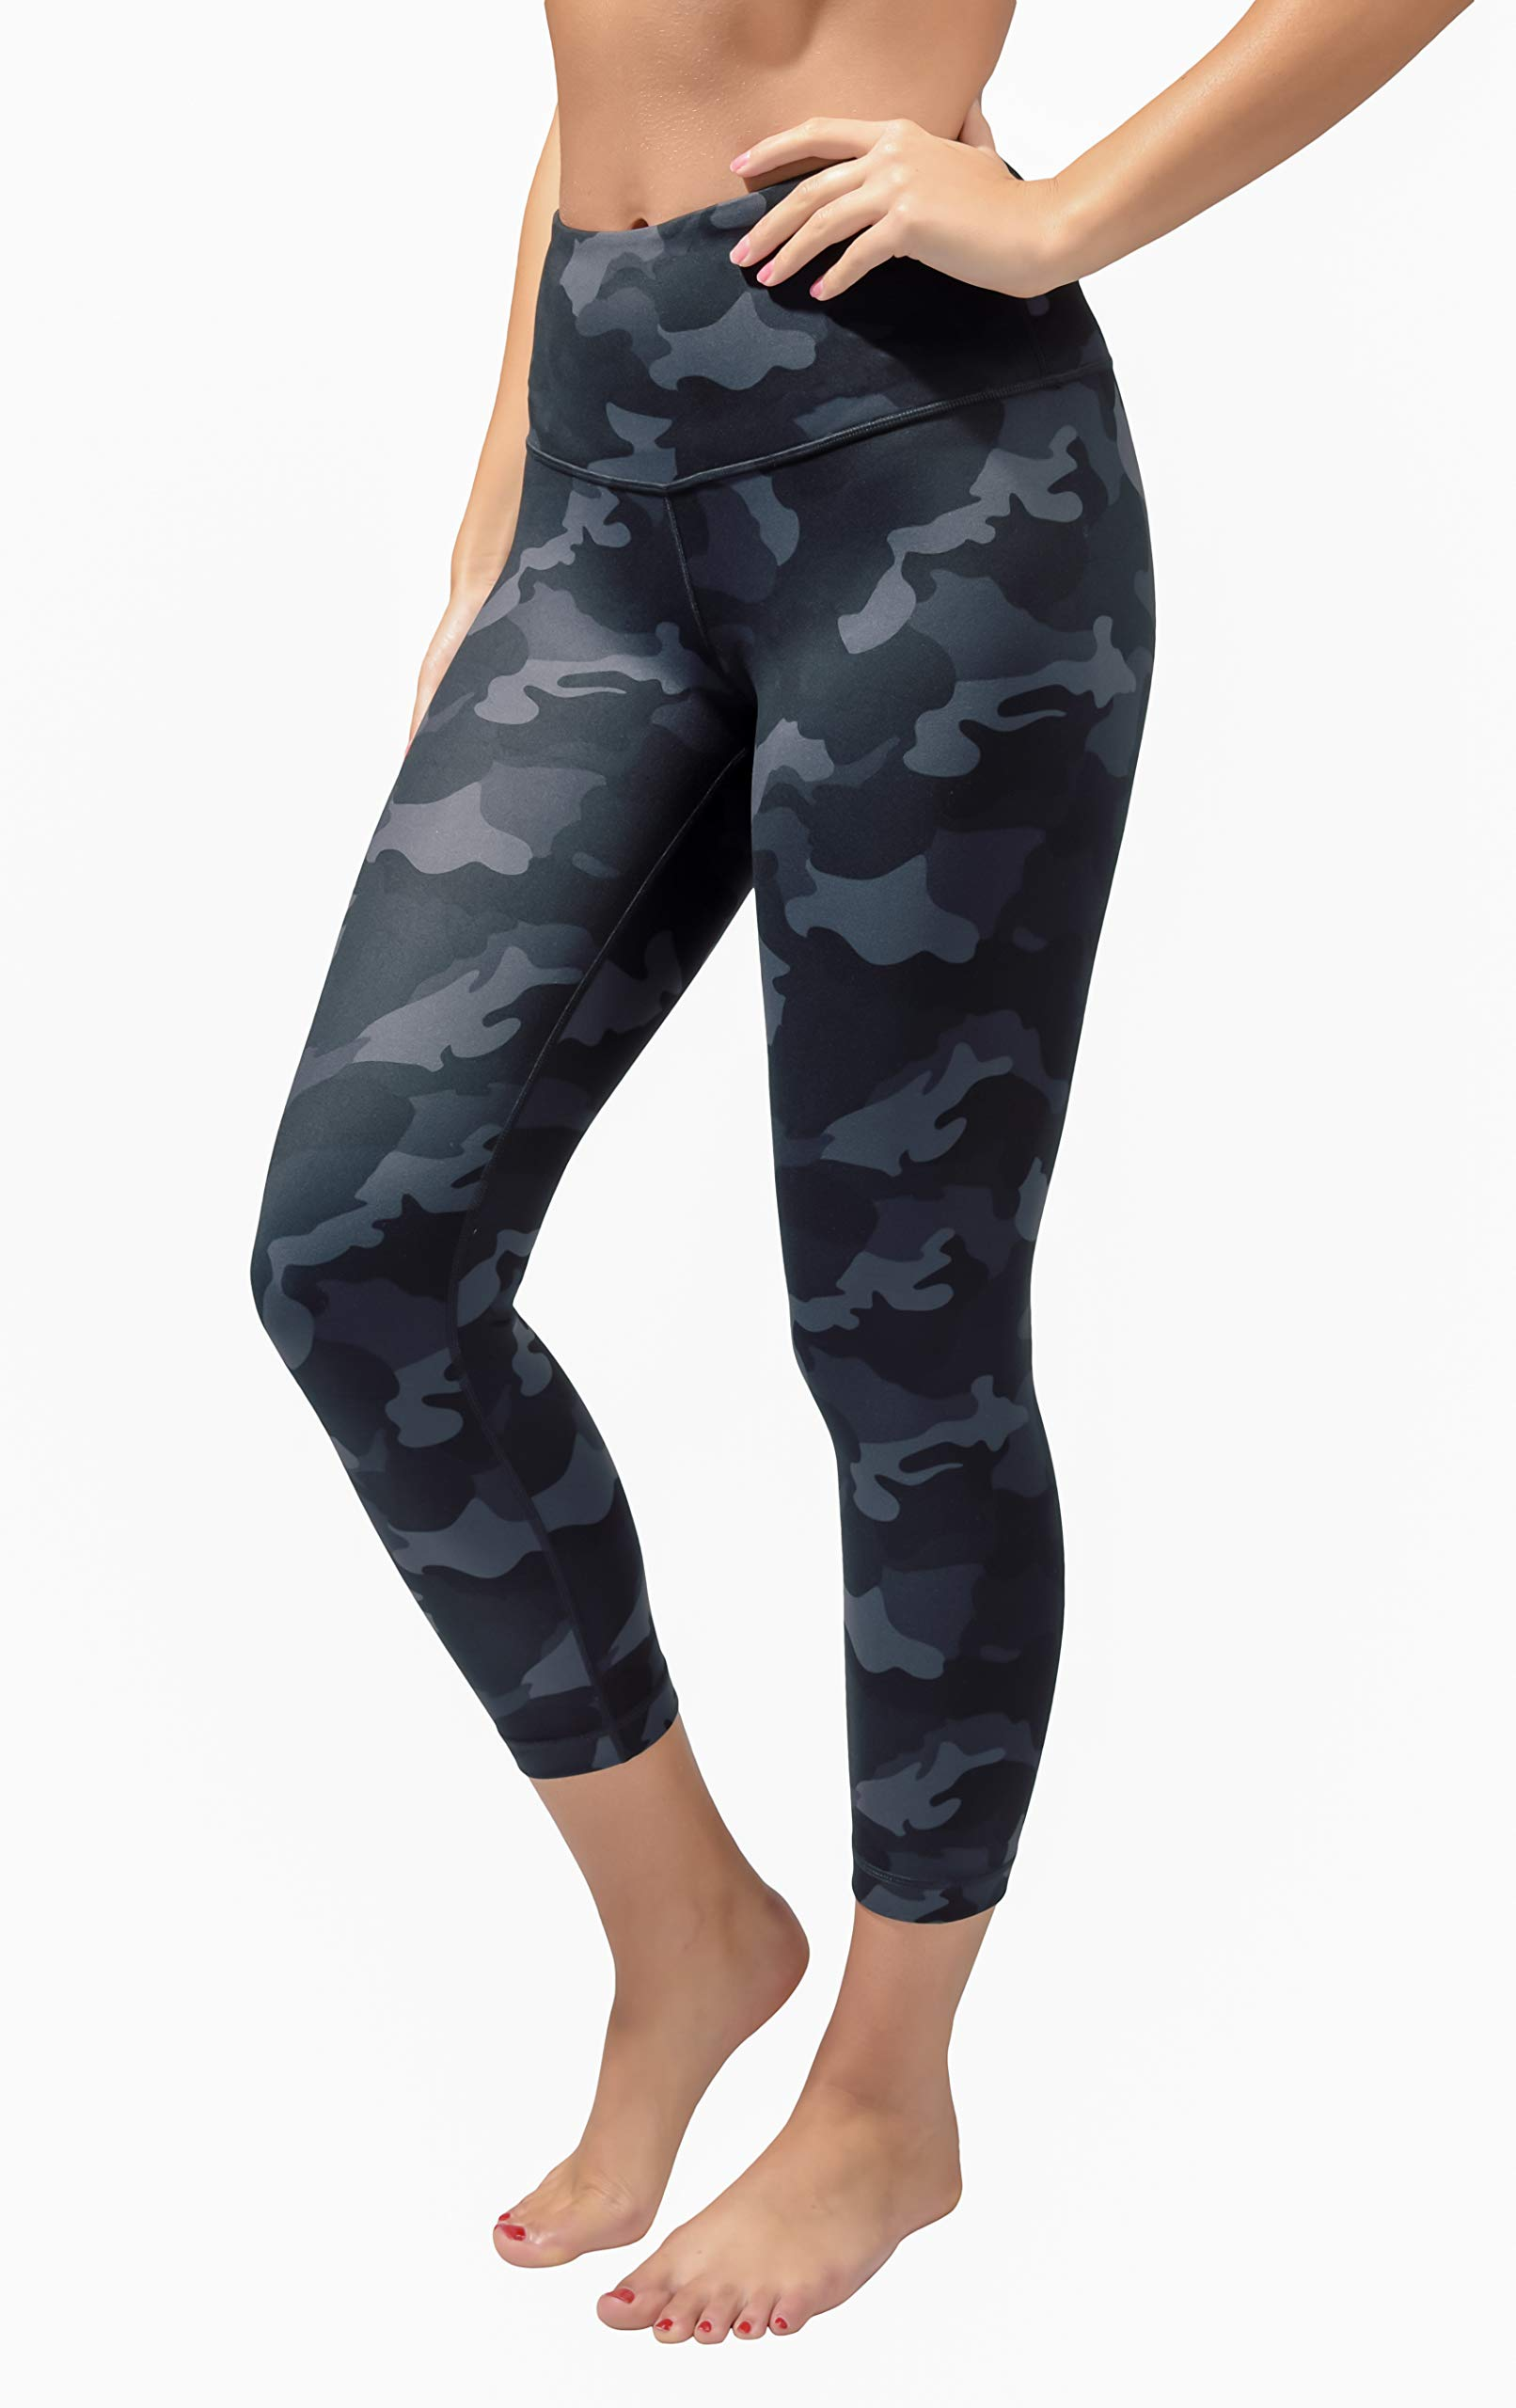 Yogalicious High Waist Ultra Soft Lightweight Capris - High Rise Yoga Pants - Black Camo - Small by Yogalicious